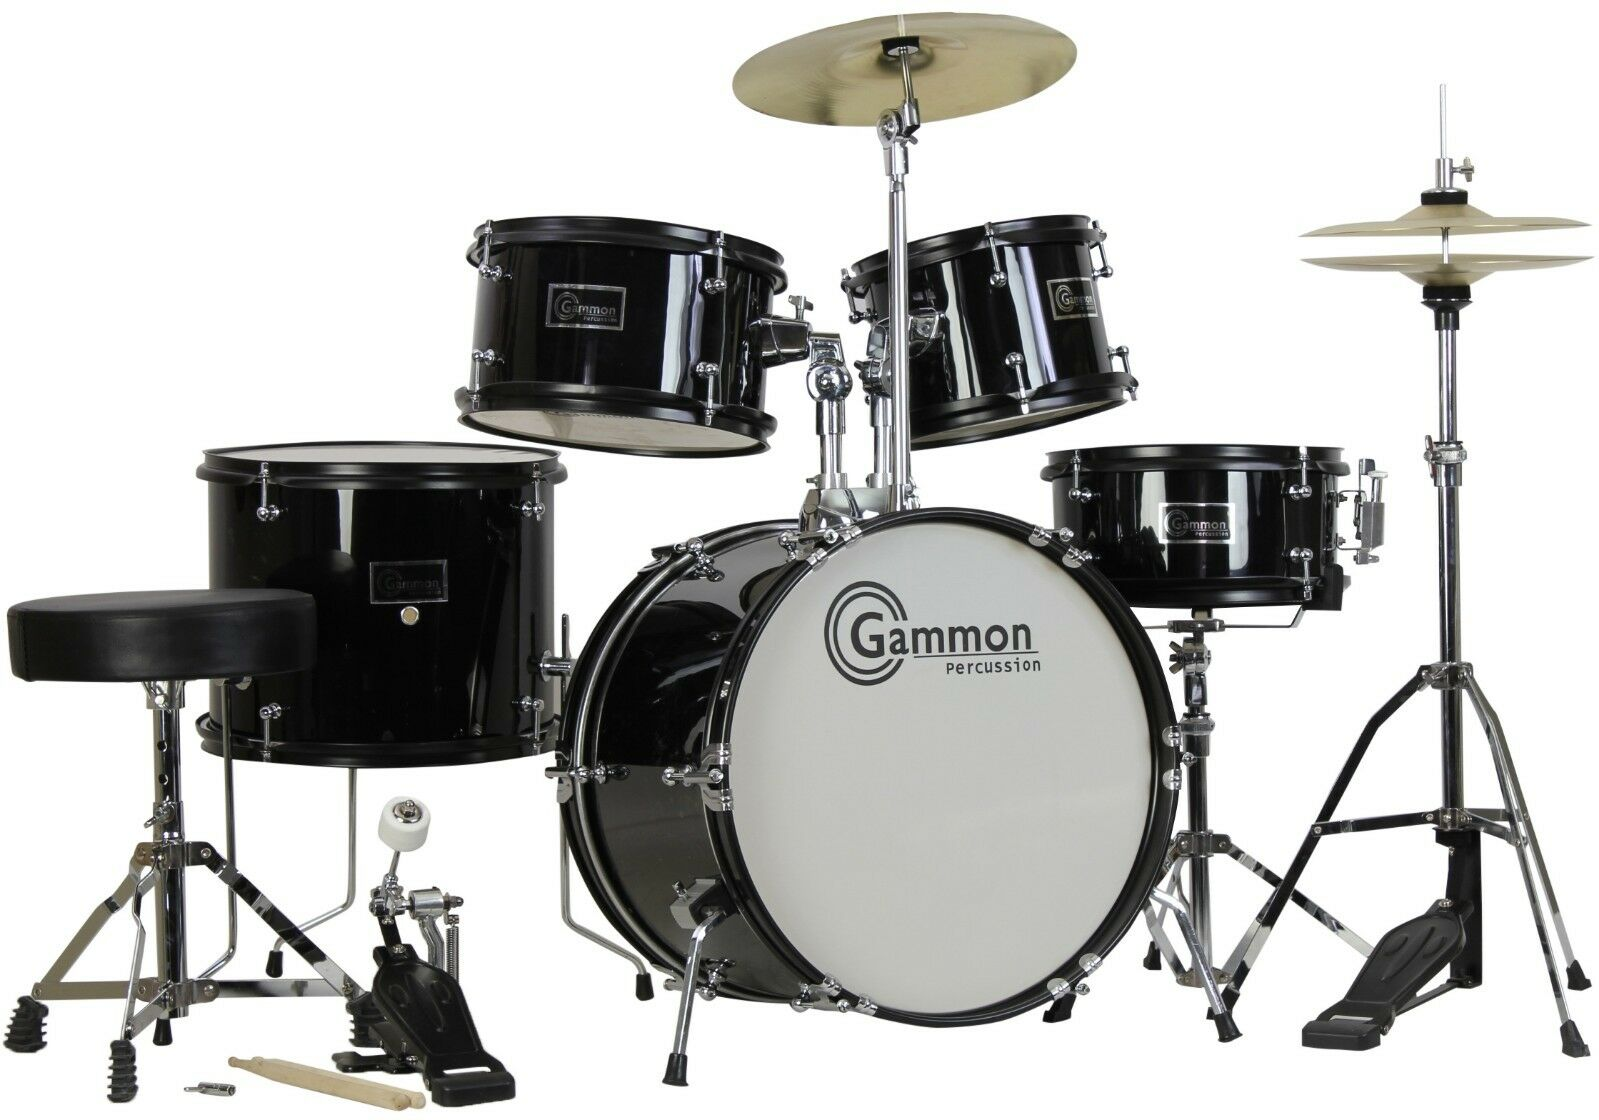 New Black Drum Set 5 Piece Junior Complete Child Kids Kit With Stool Sticks - $829.77